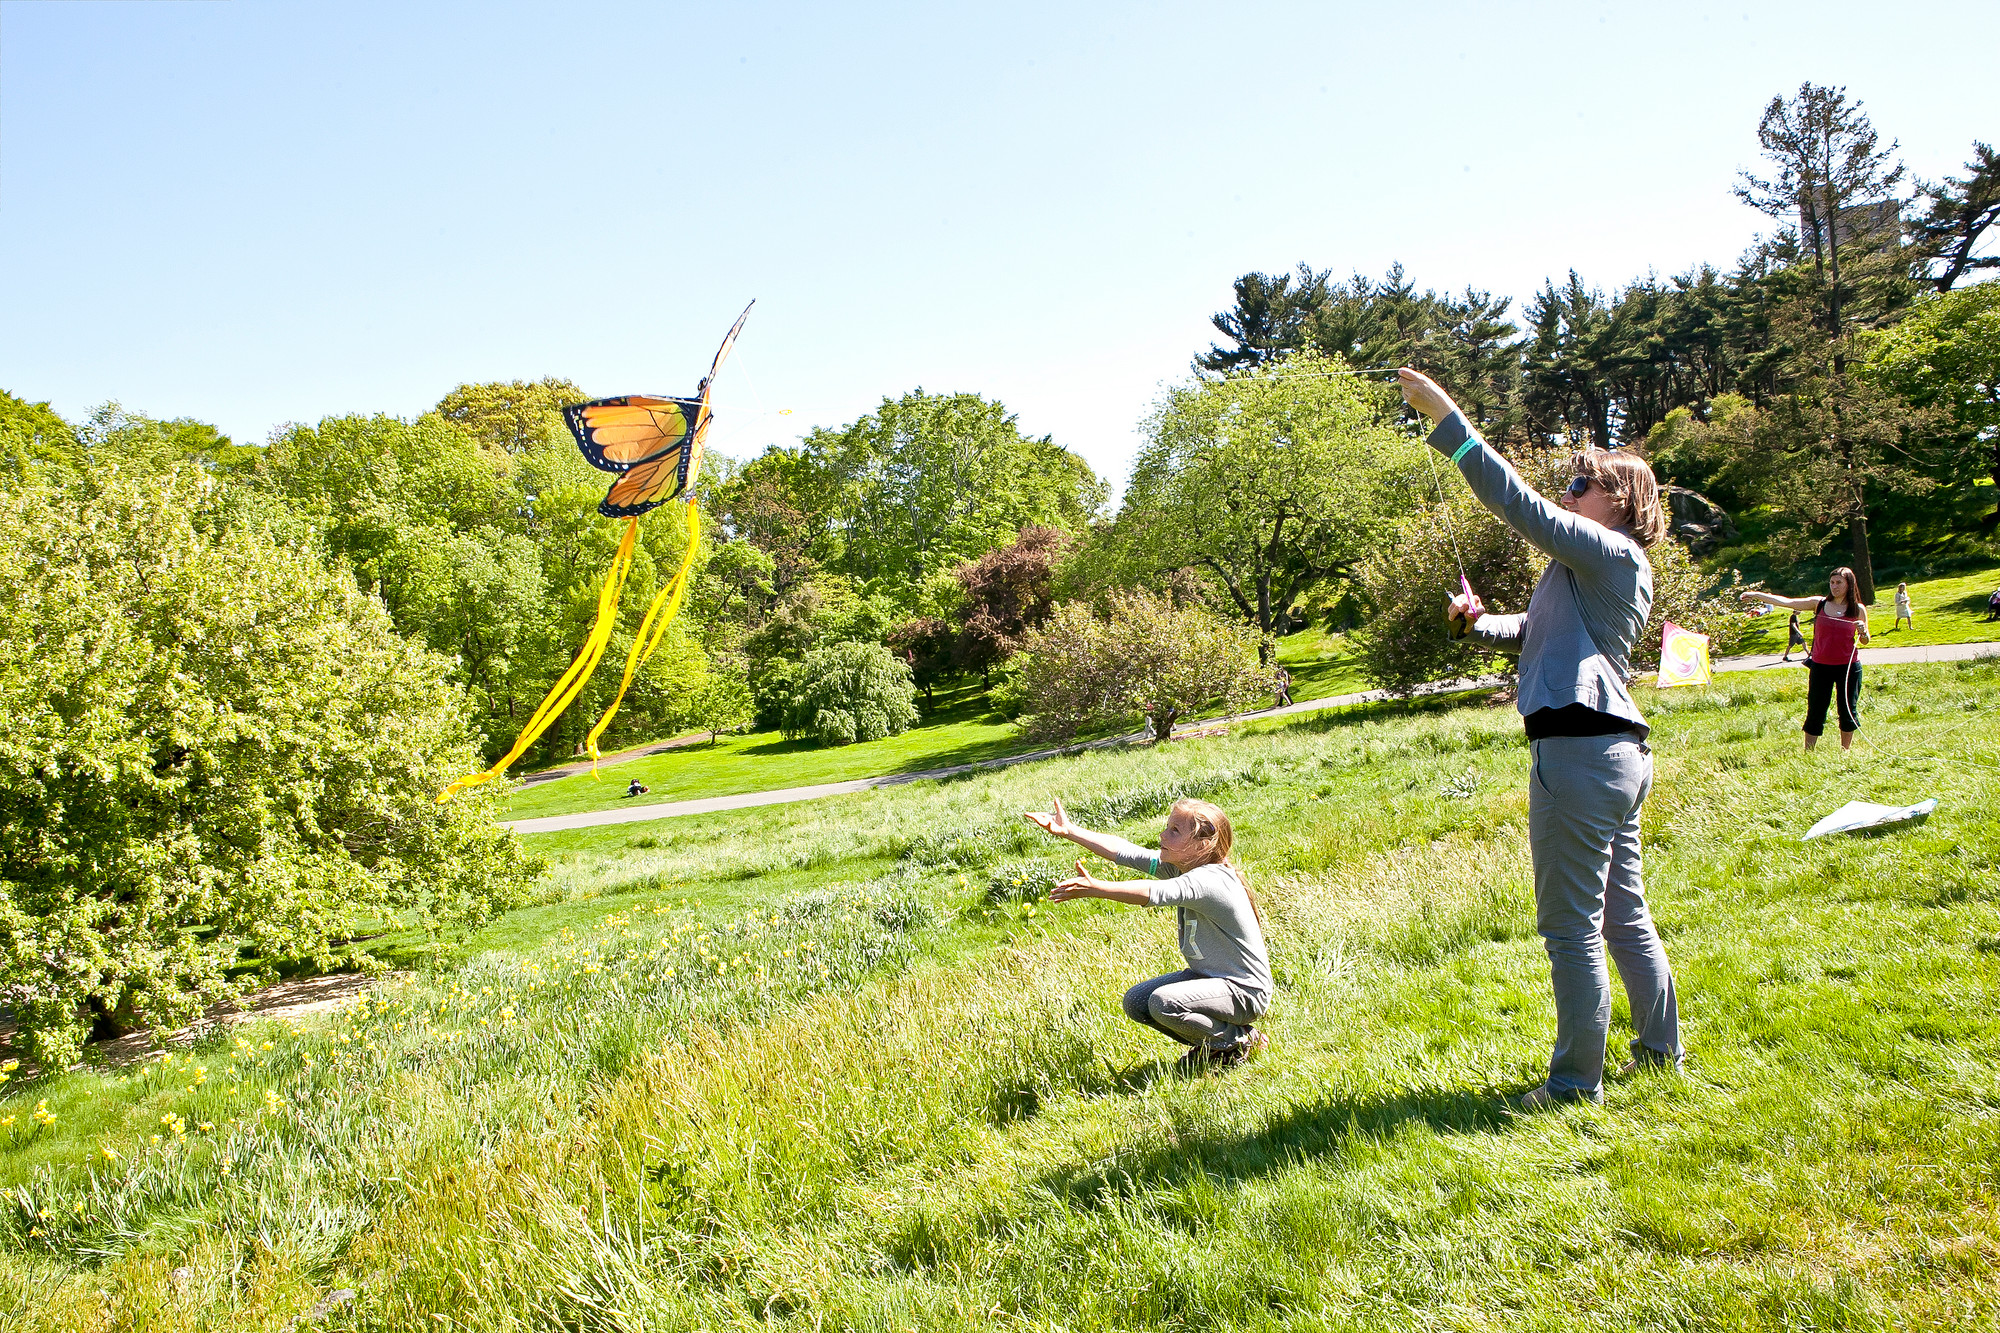 VERONIKA IAGNIUK, 8, and her mom Nataliia Lagniuk learn to fly a kite together during the Mother's Day Garden Party on Daffodil Hill at New York Botanical Garden on Sunday.